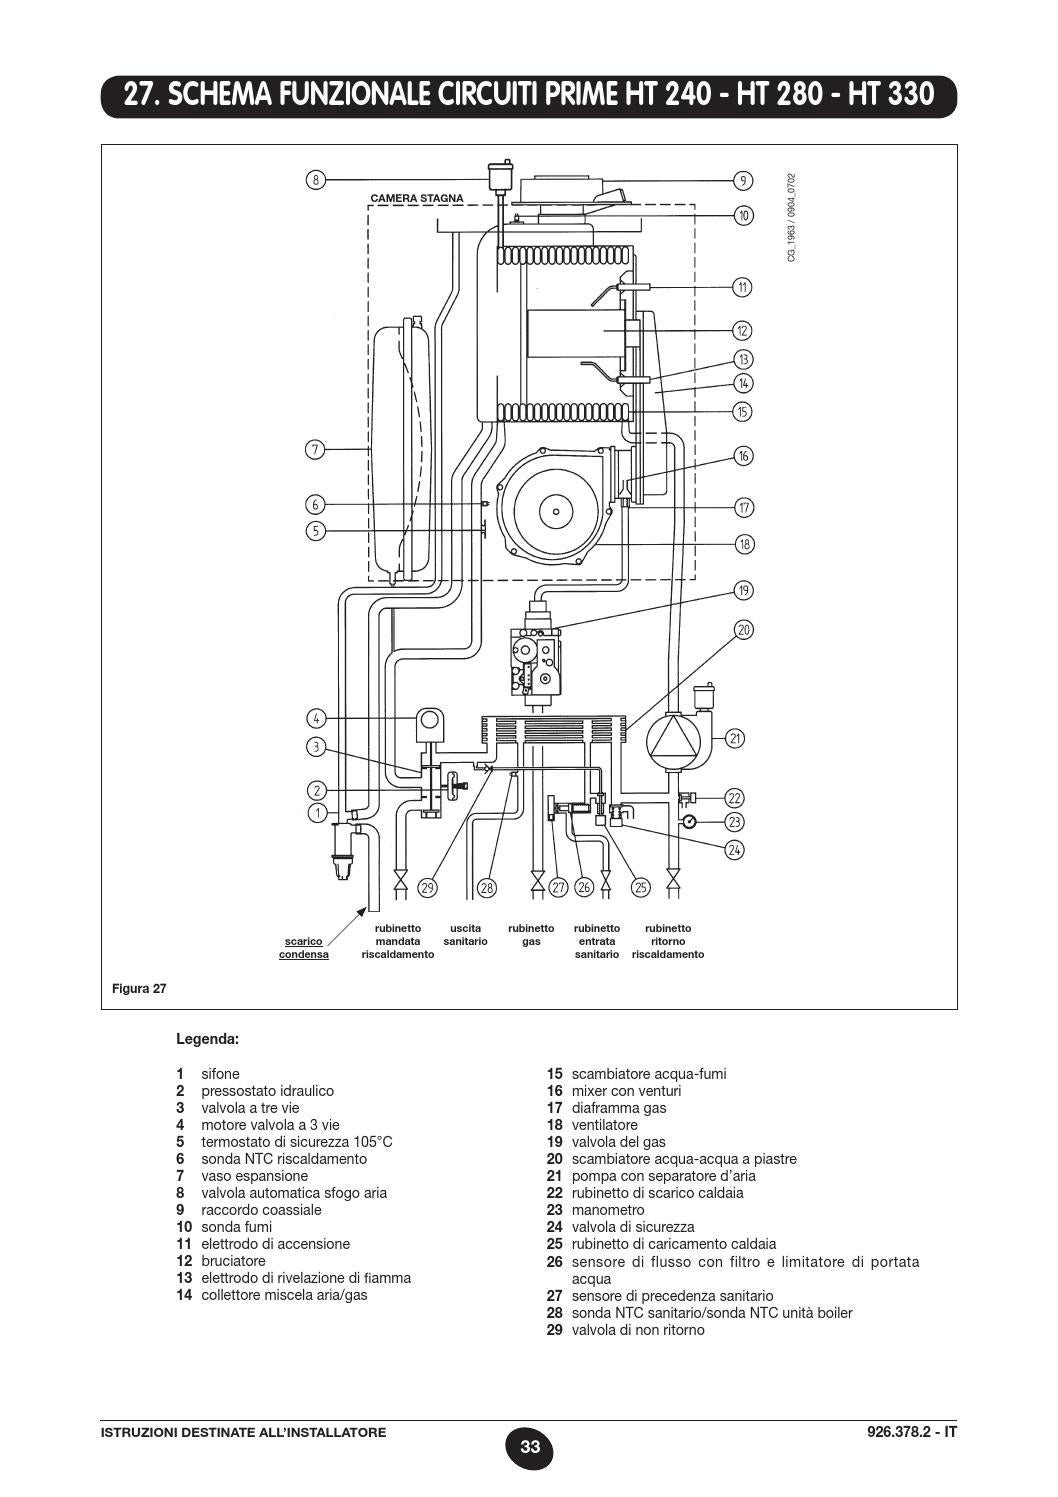 Manuale prime ht baxi by baxi spa issuu for Termostato baxi istruzioni